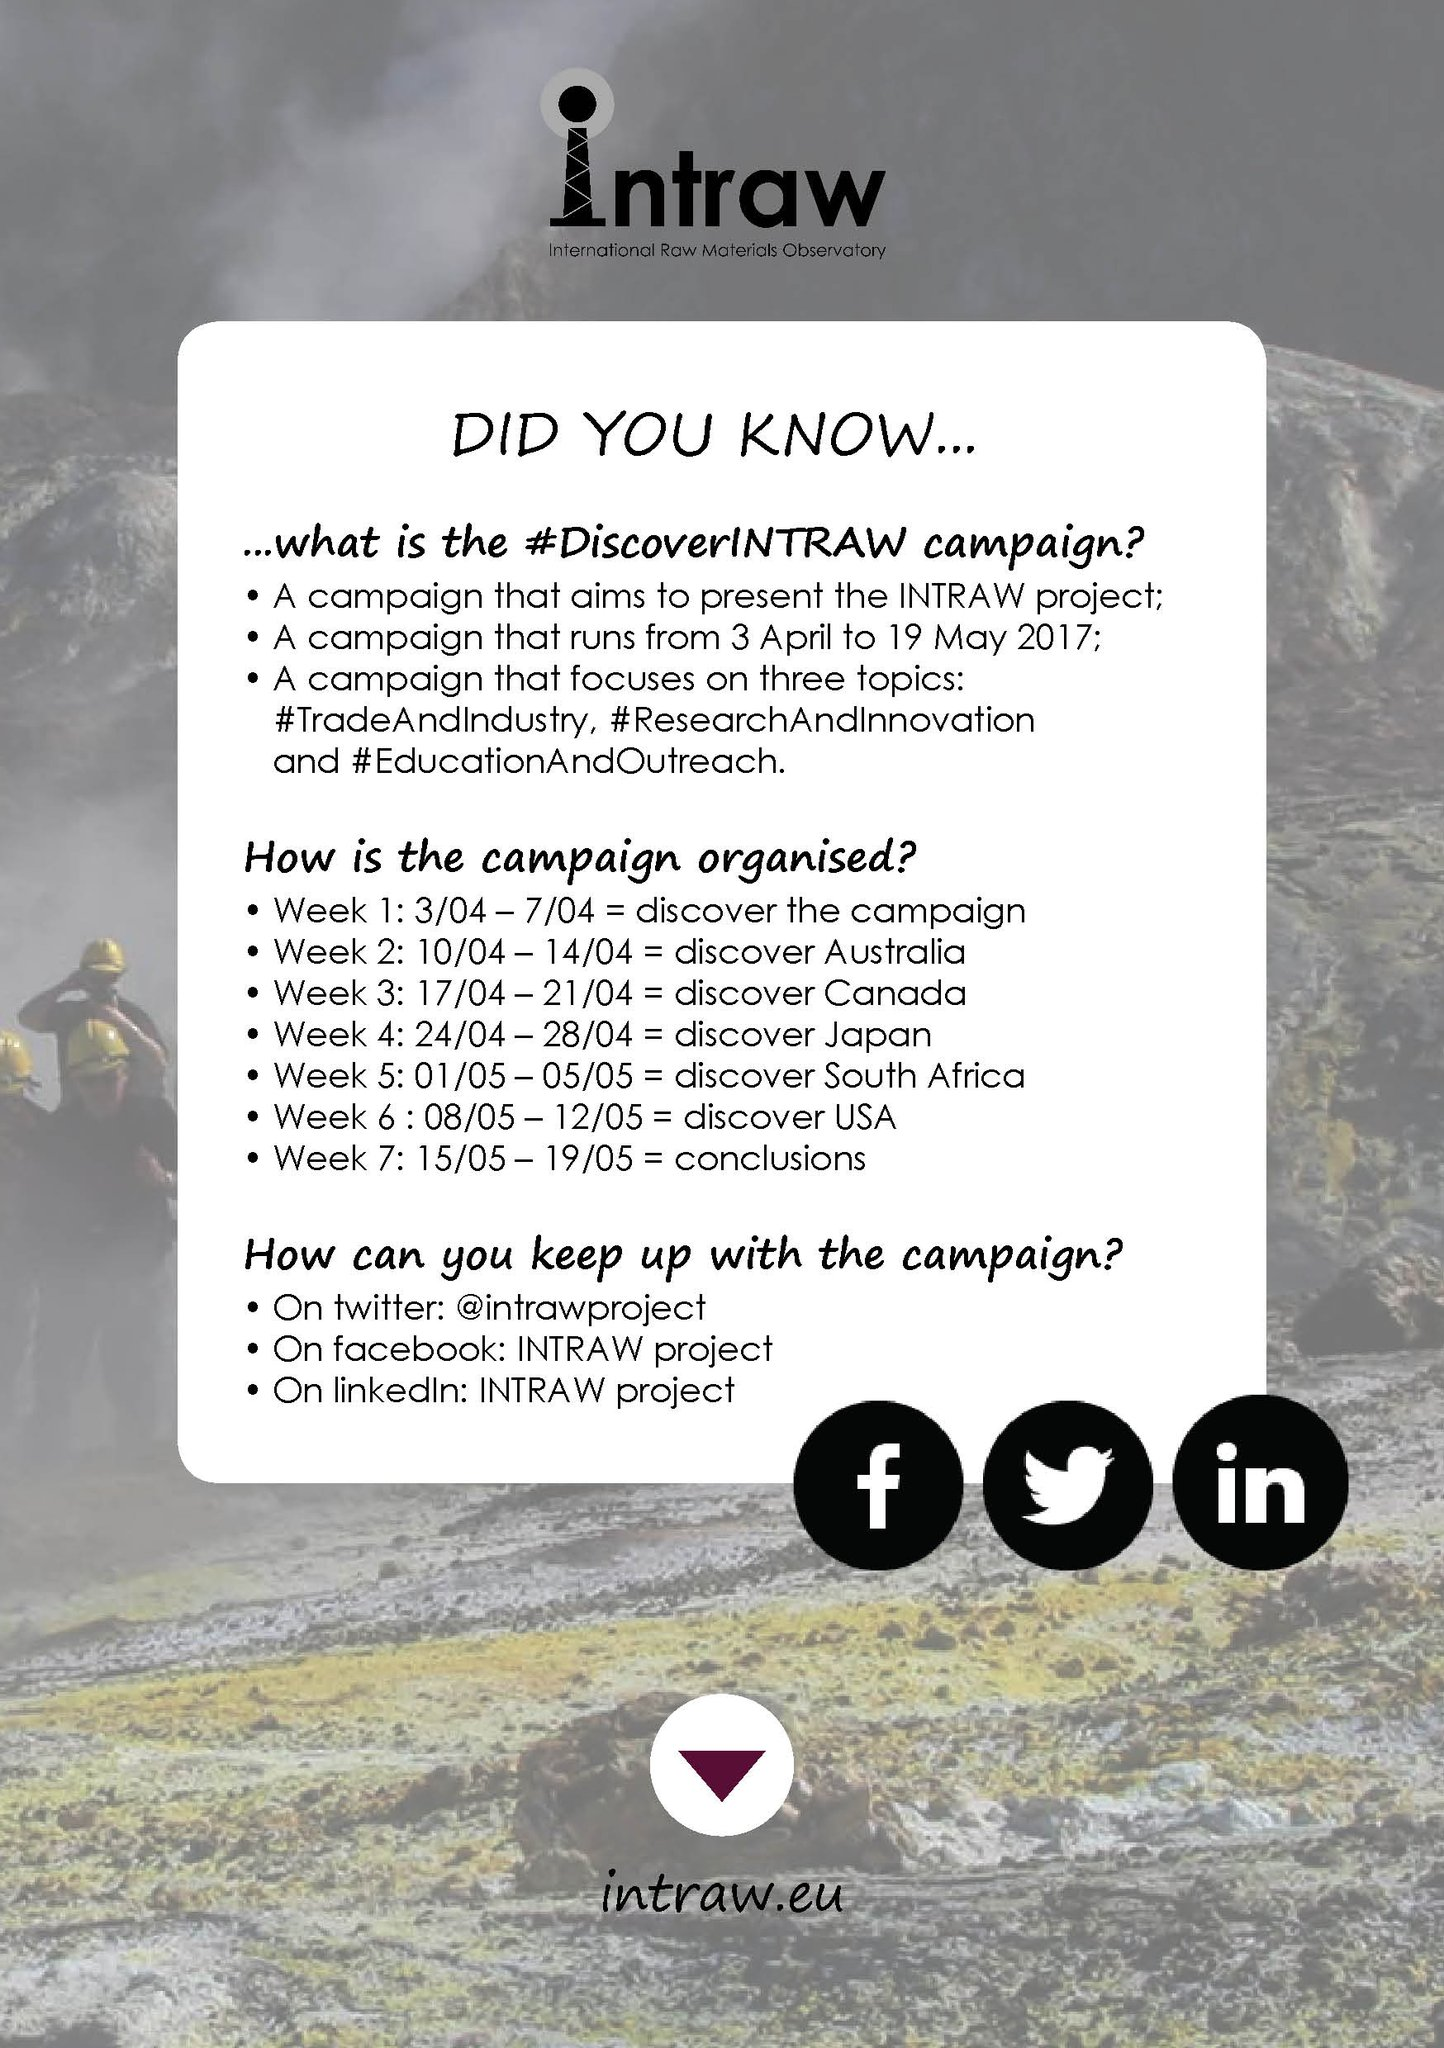 More information on what the campaign is about and its schedule